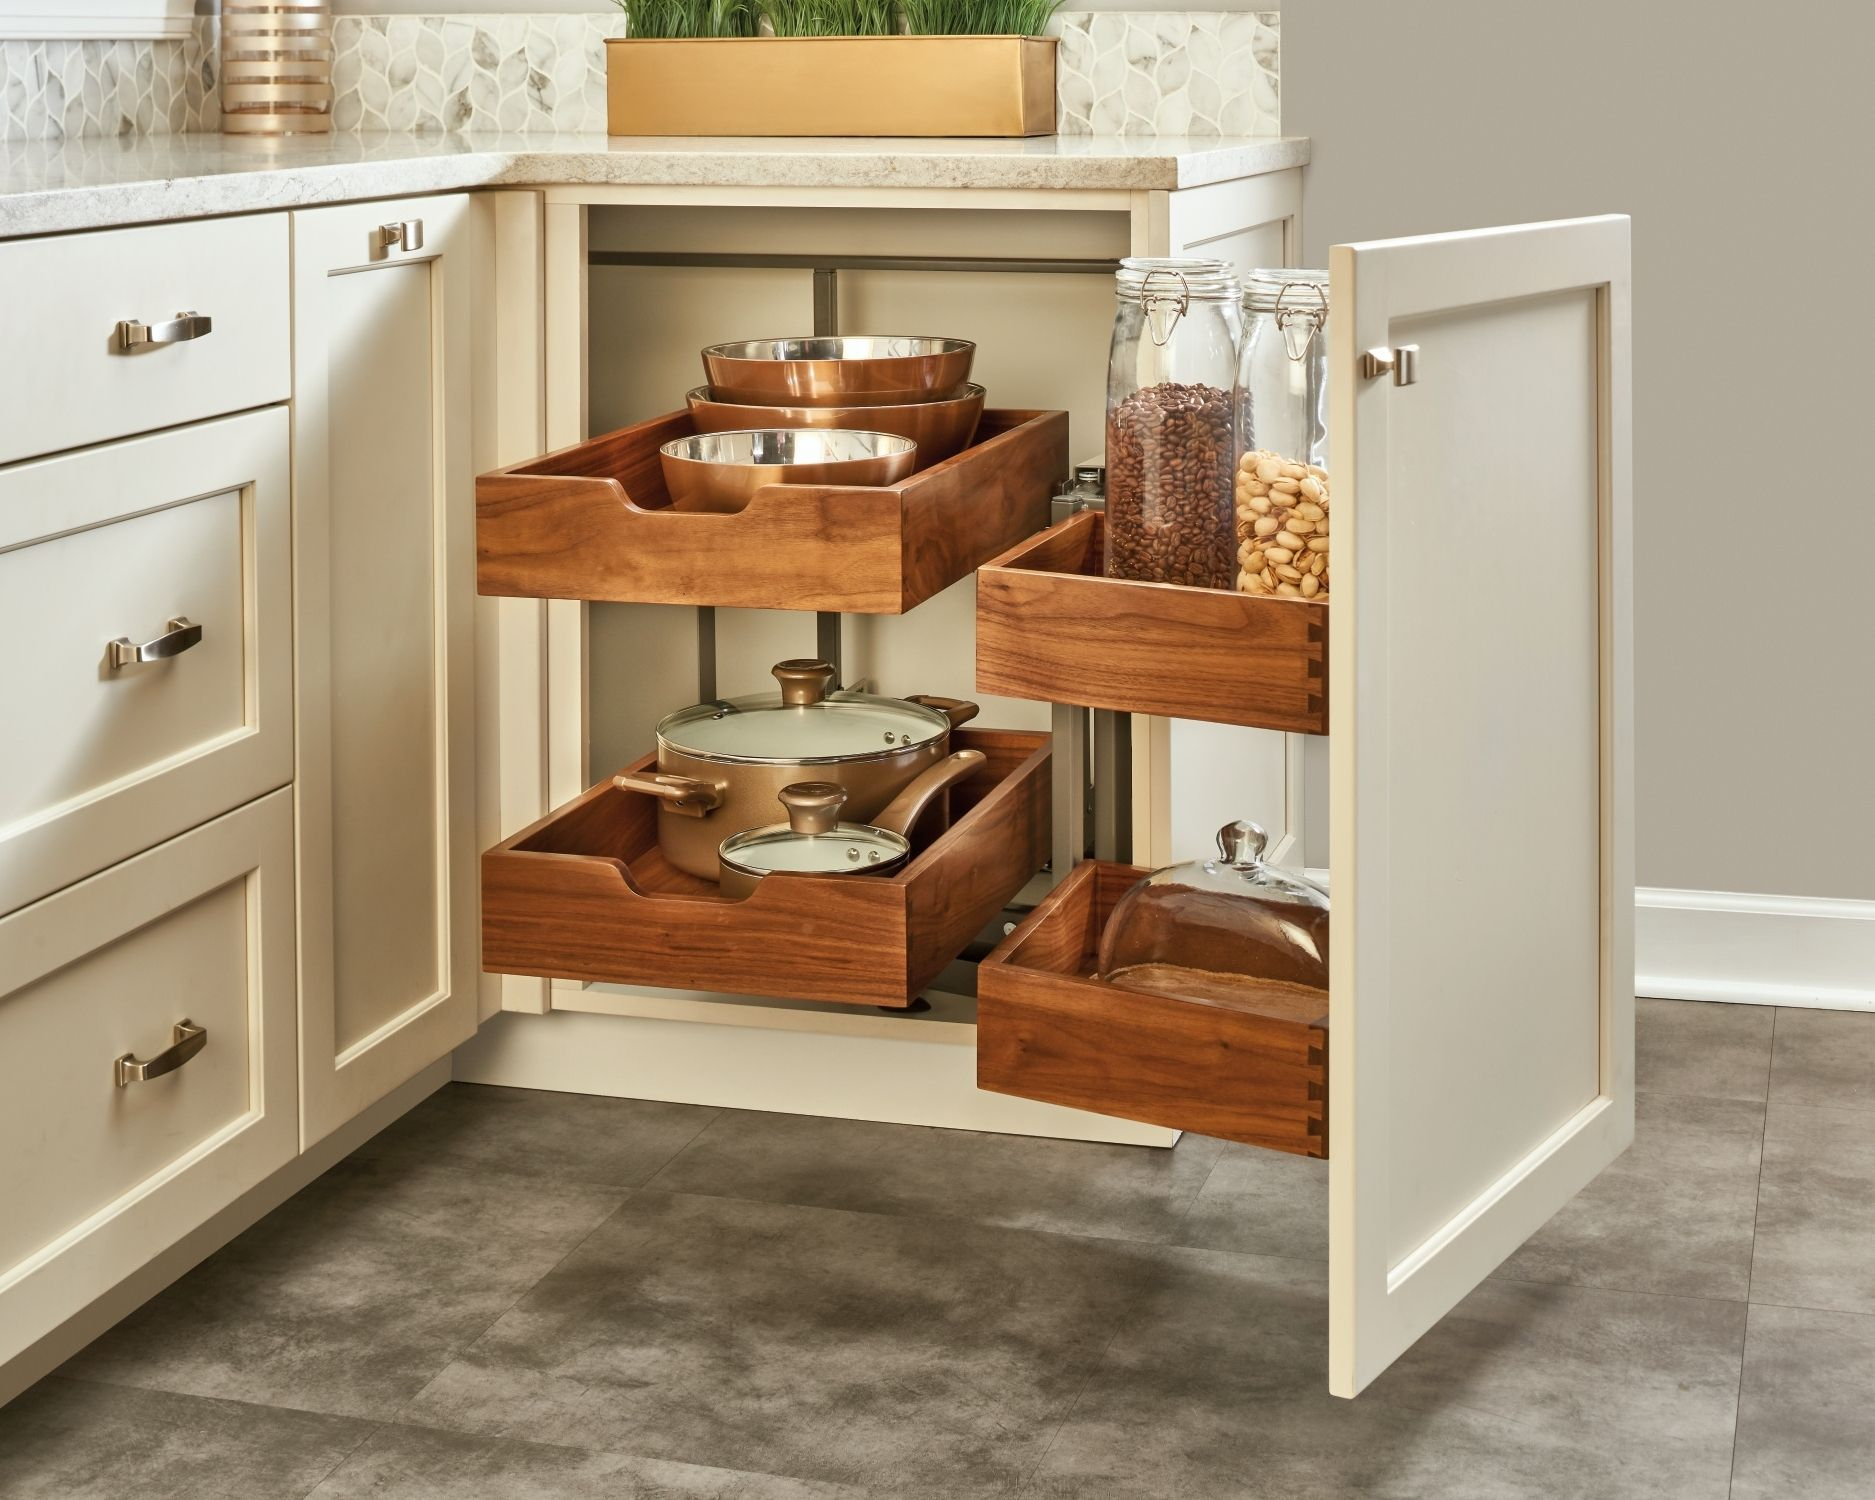 30 Insanely Smart DIY Kitchen Storage Ideas (With images ...